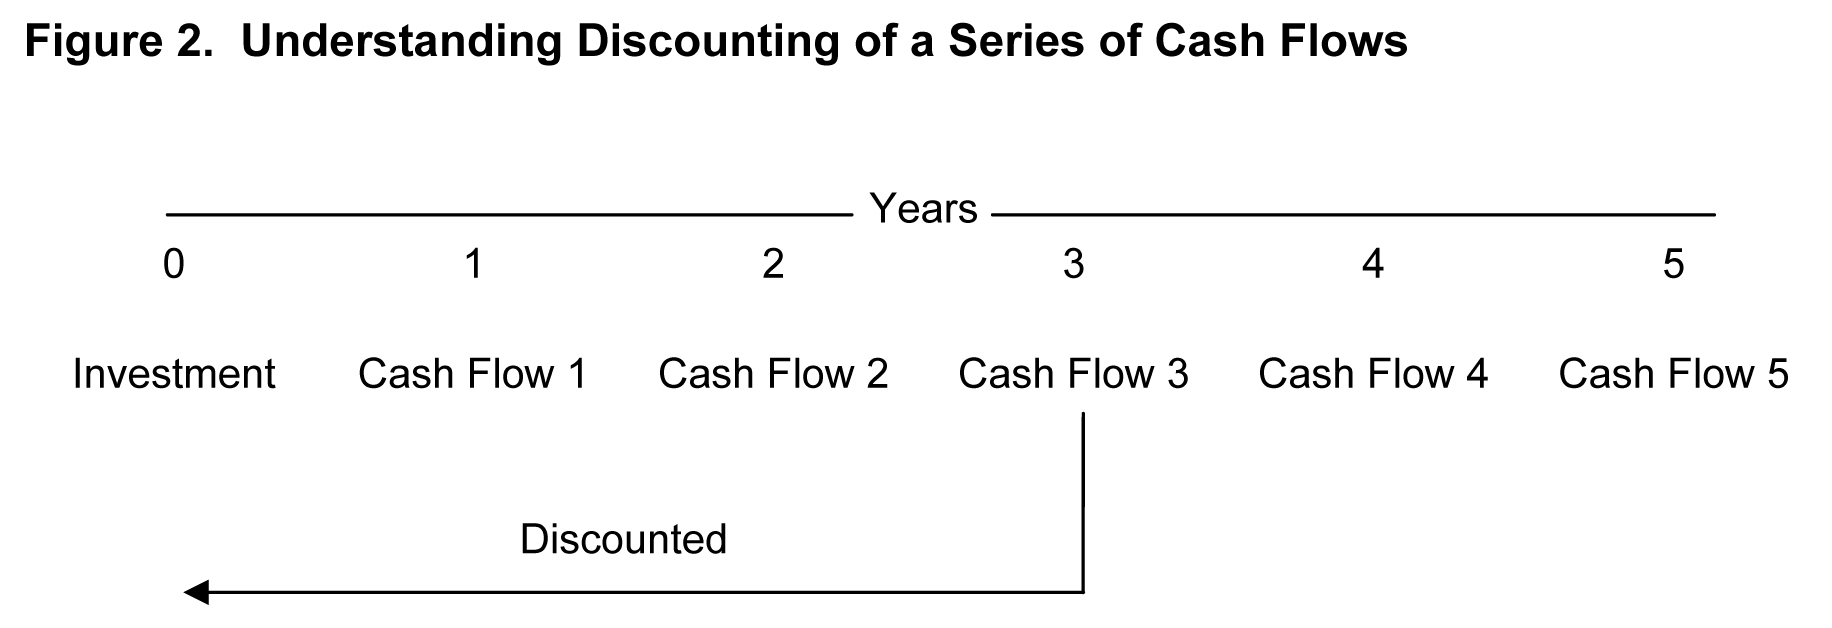 Understanding discountin of a series of cash flows